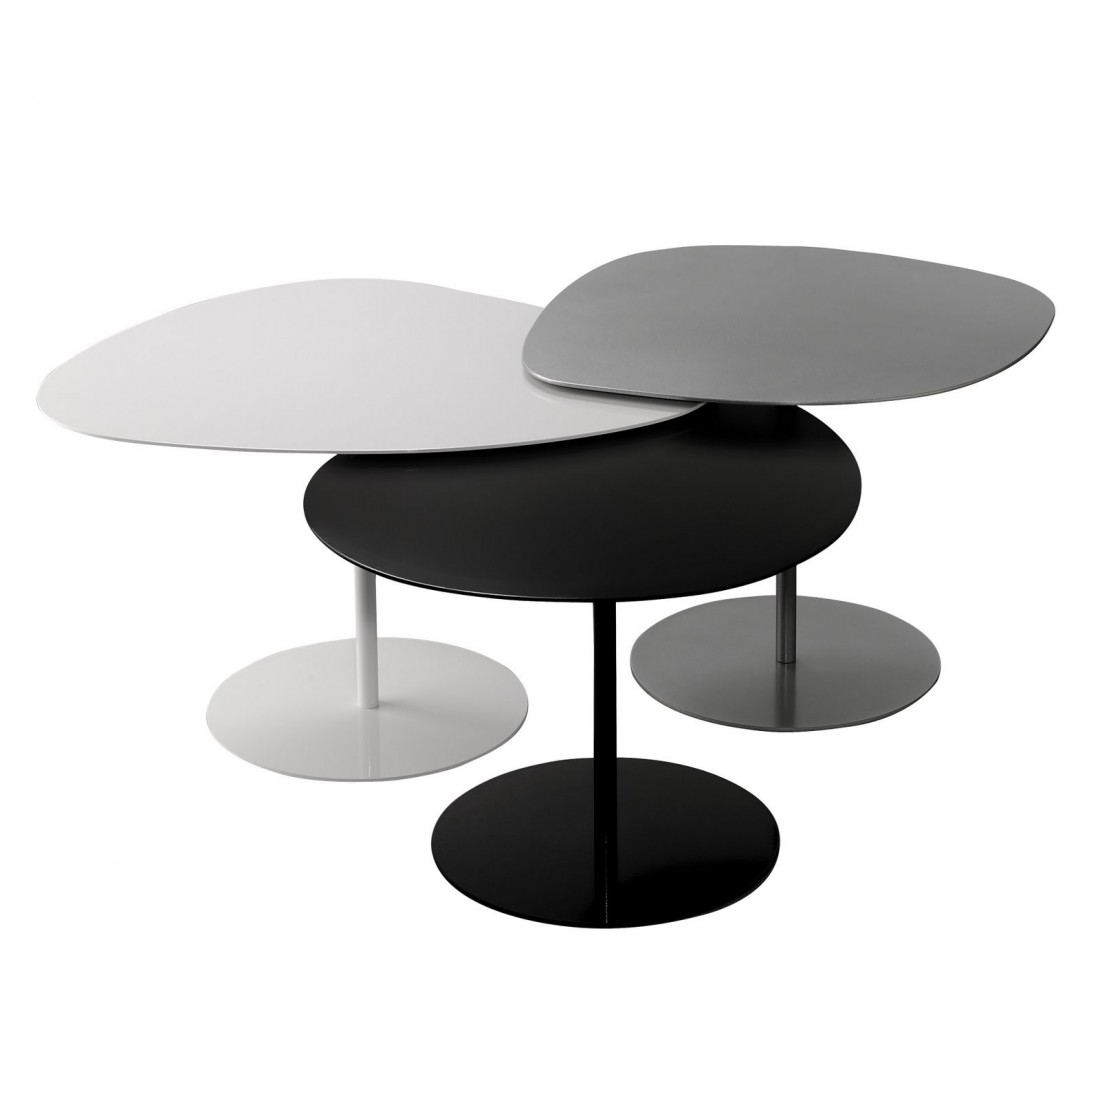 Tables basse galets en aluminium lot de 3 mati re grise mati re grise conf - Table basse en aluminium ...